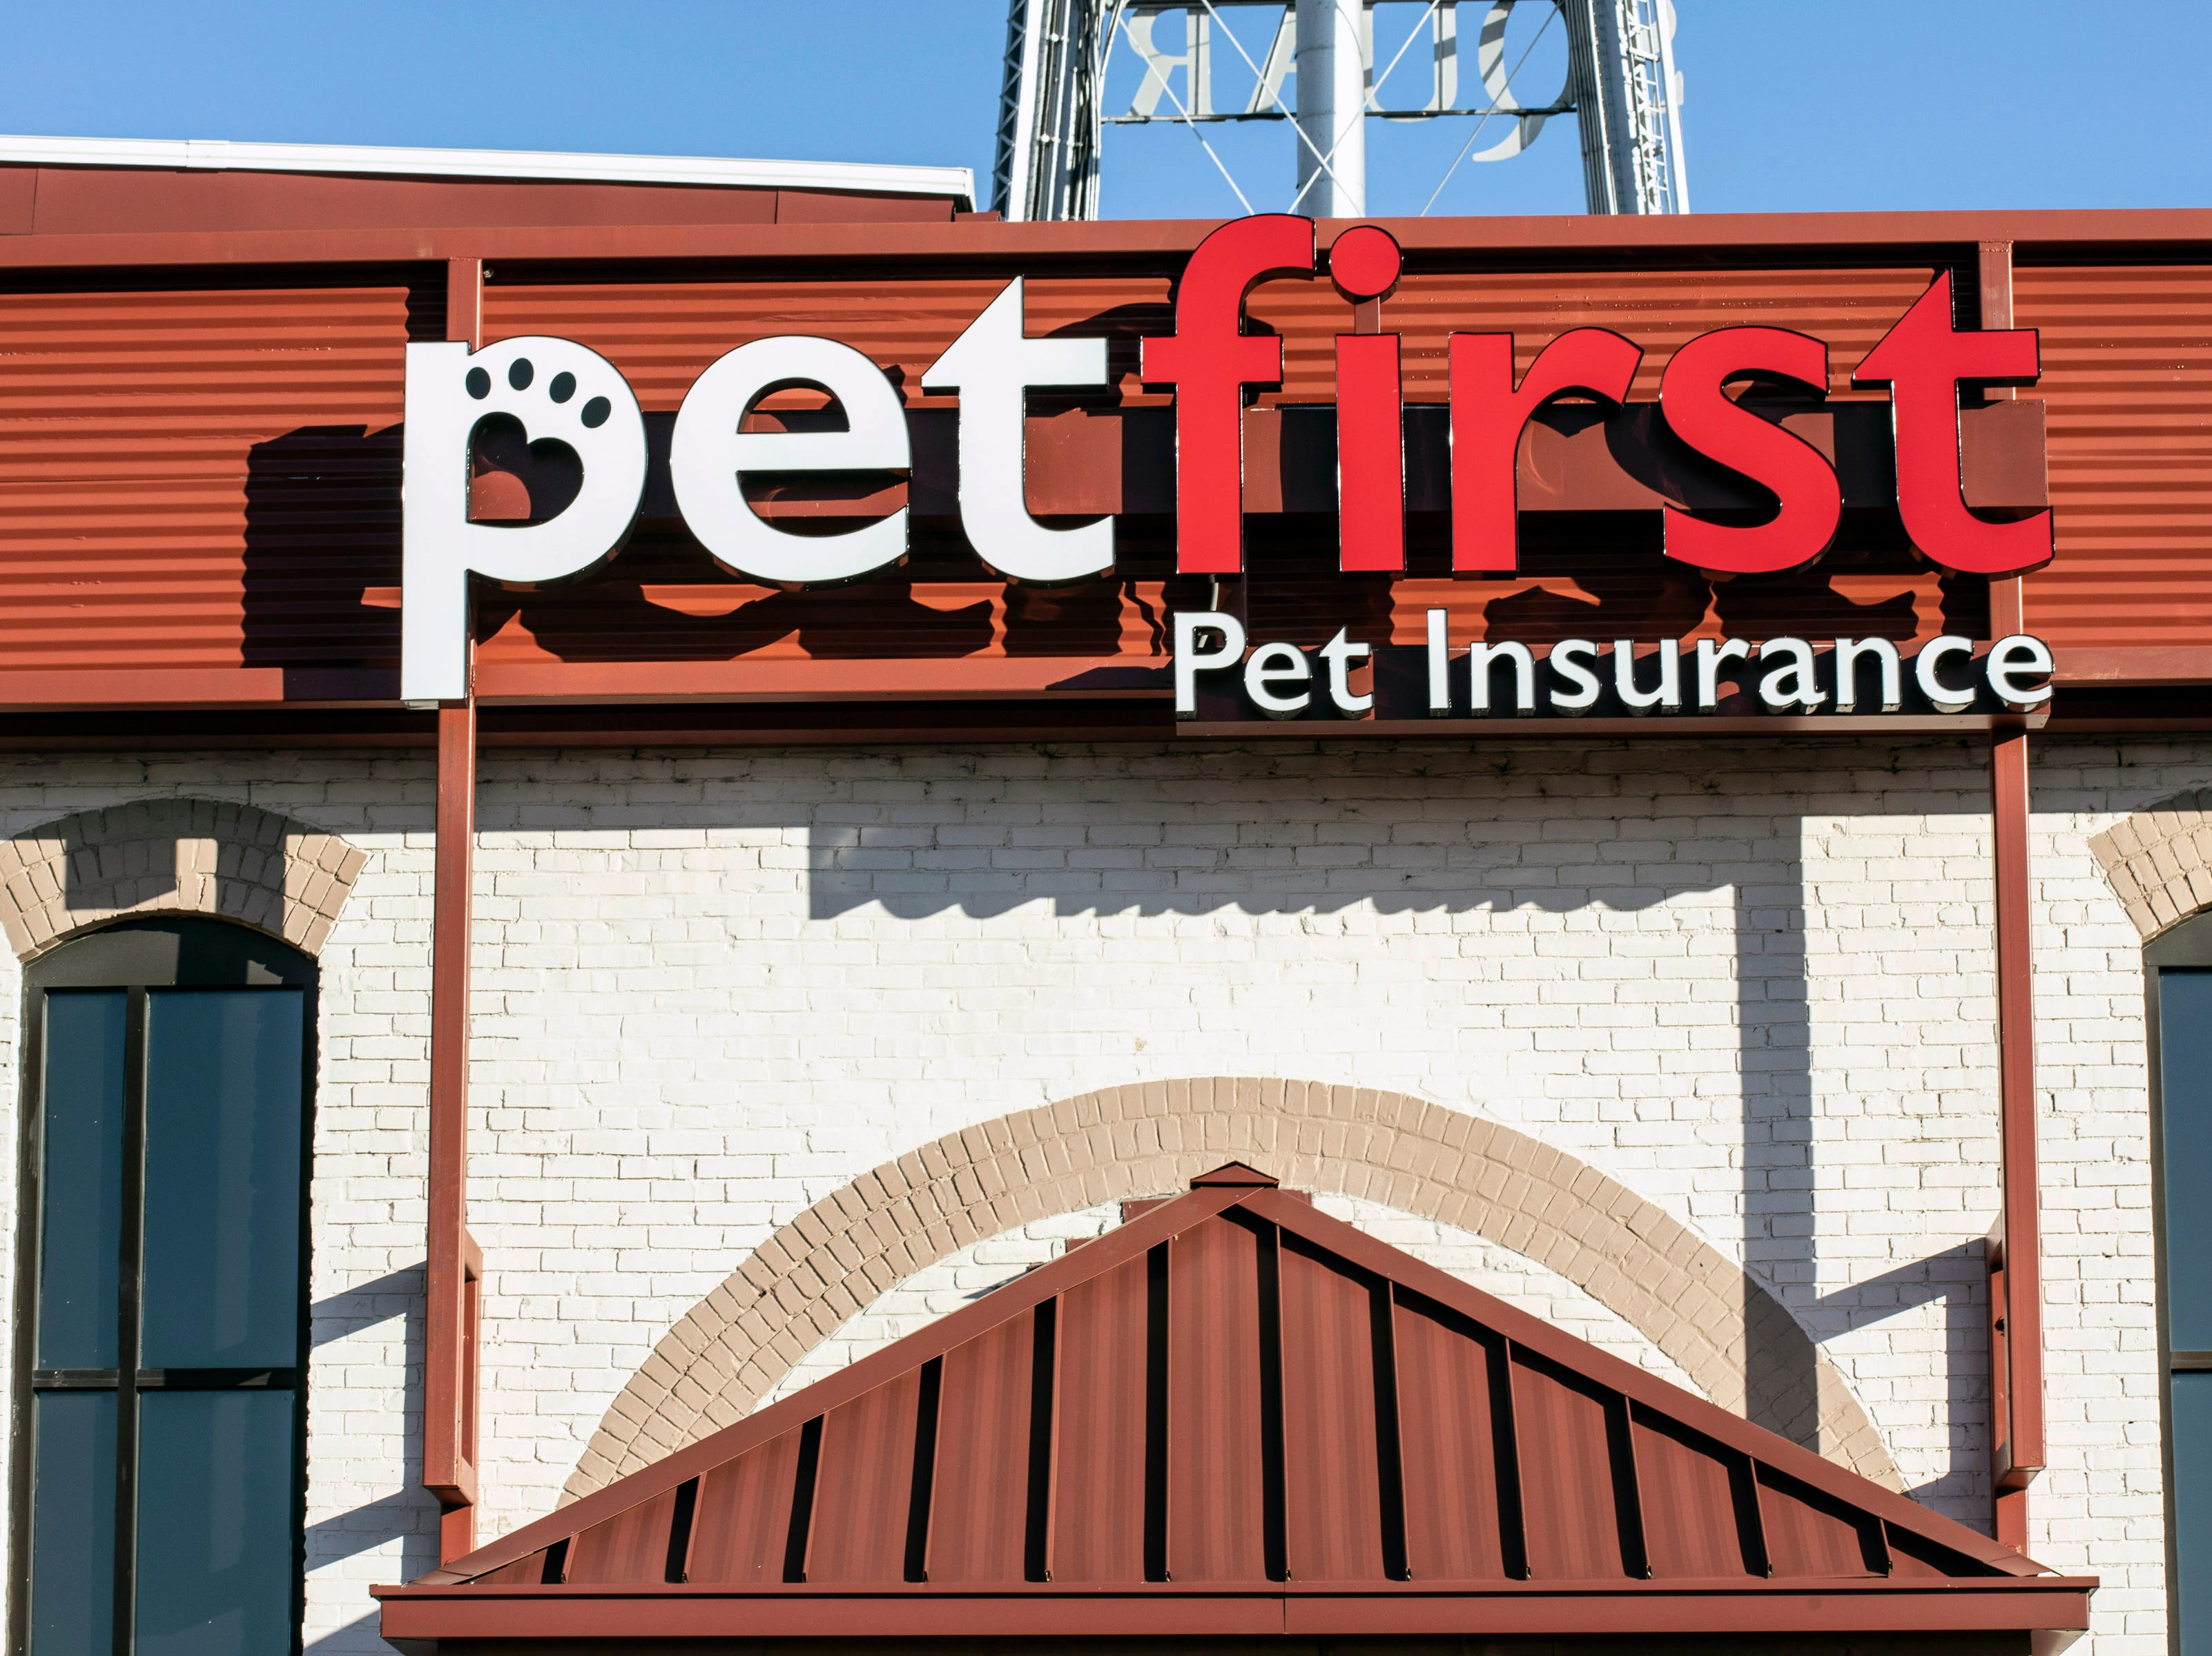 PetFirst pet insurance was founded in 2005 and helps cat and dog owners cover unexpected medical bills. Jan. 10, 2019